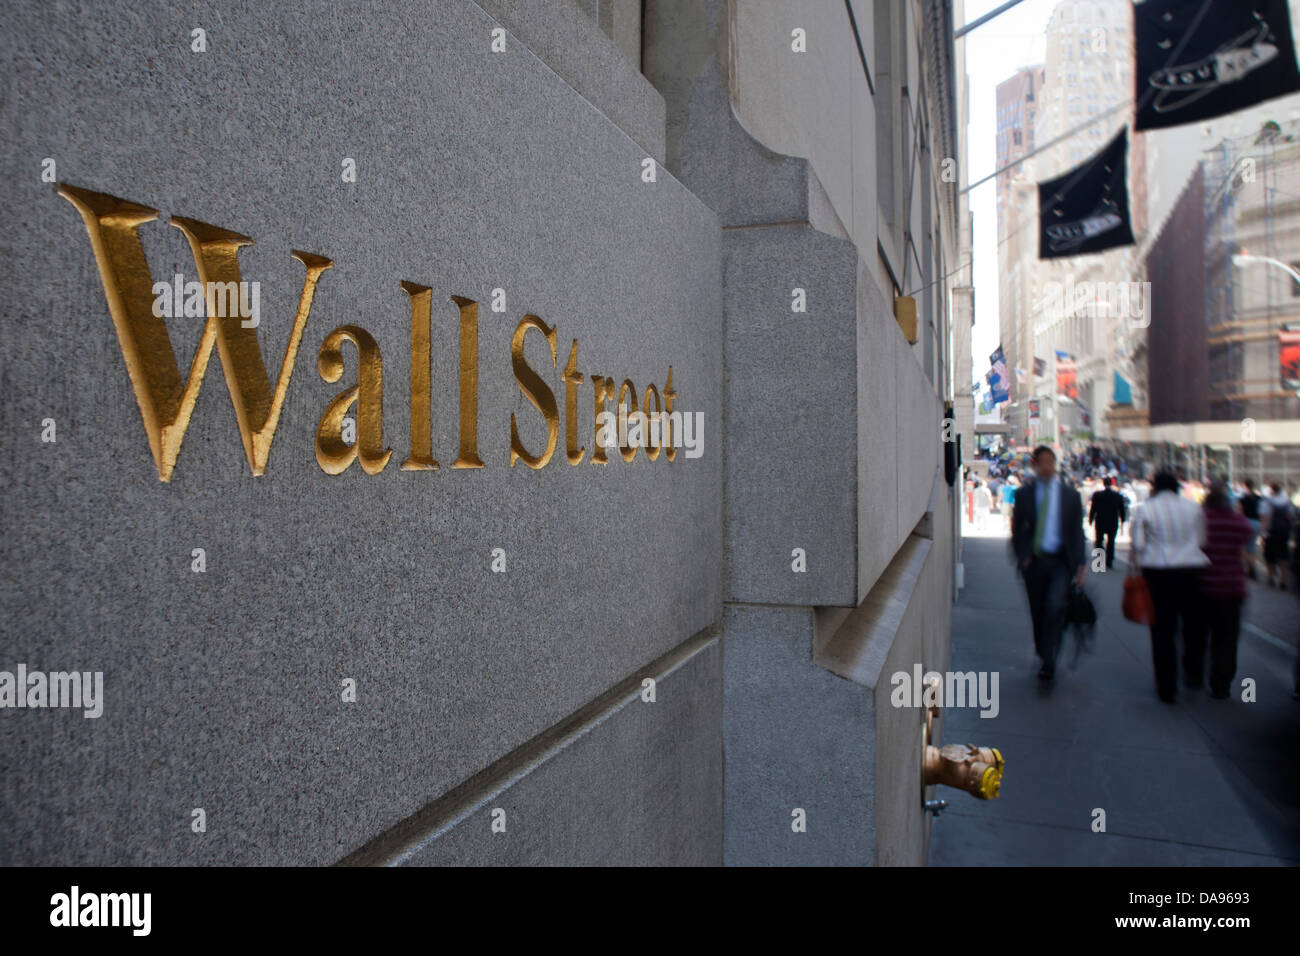 PEOPLE WALKING PAST WALL STREET SIGN DOWNTOWN MANHATTAN NEW YORK USA - Stock Image